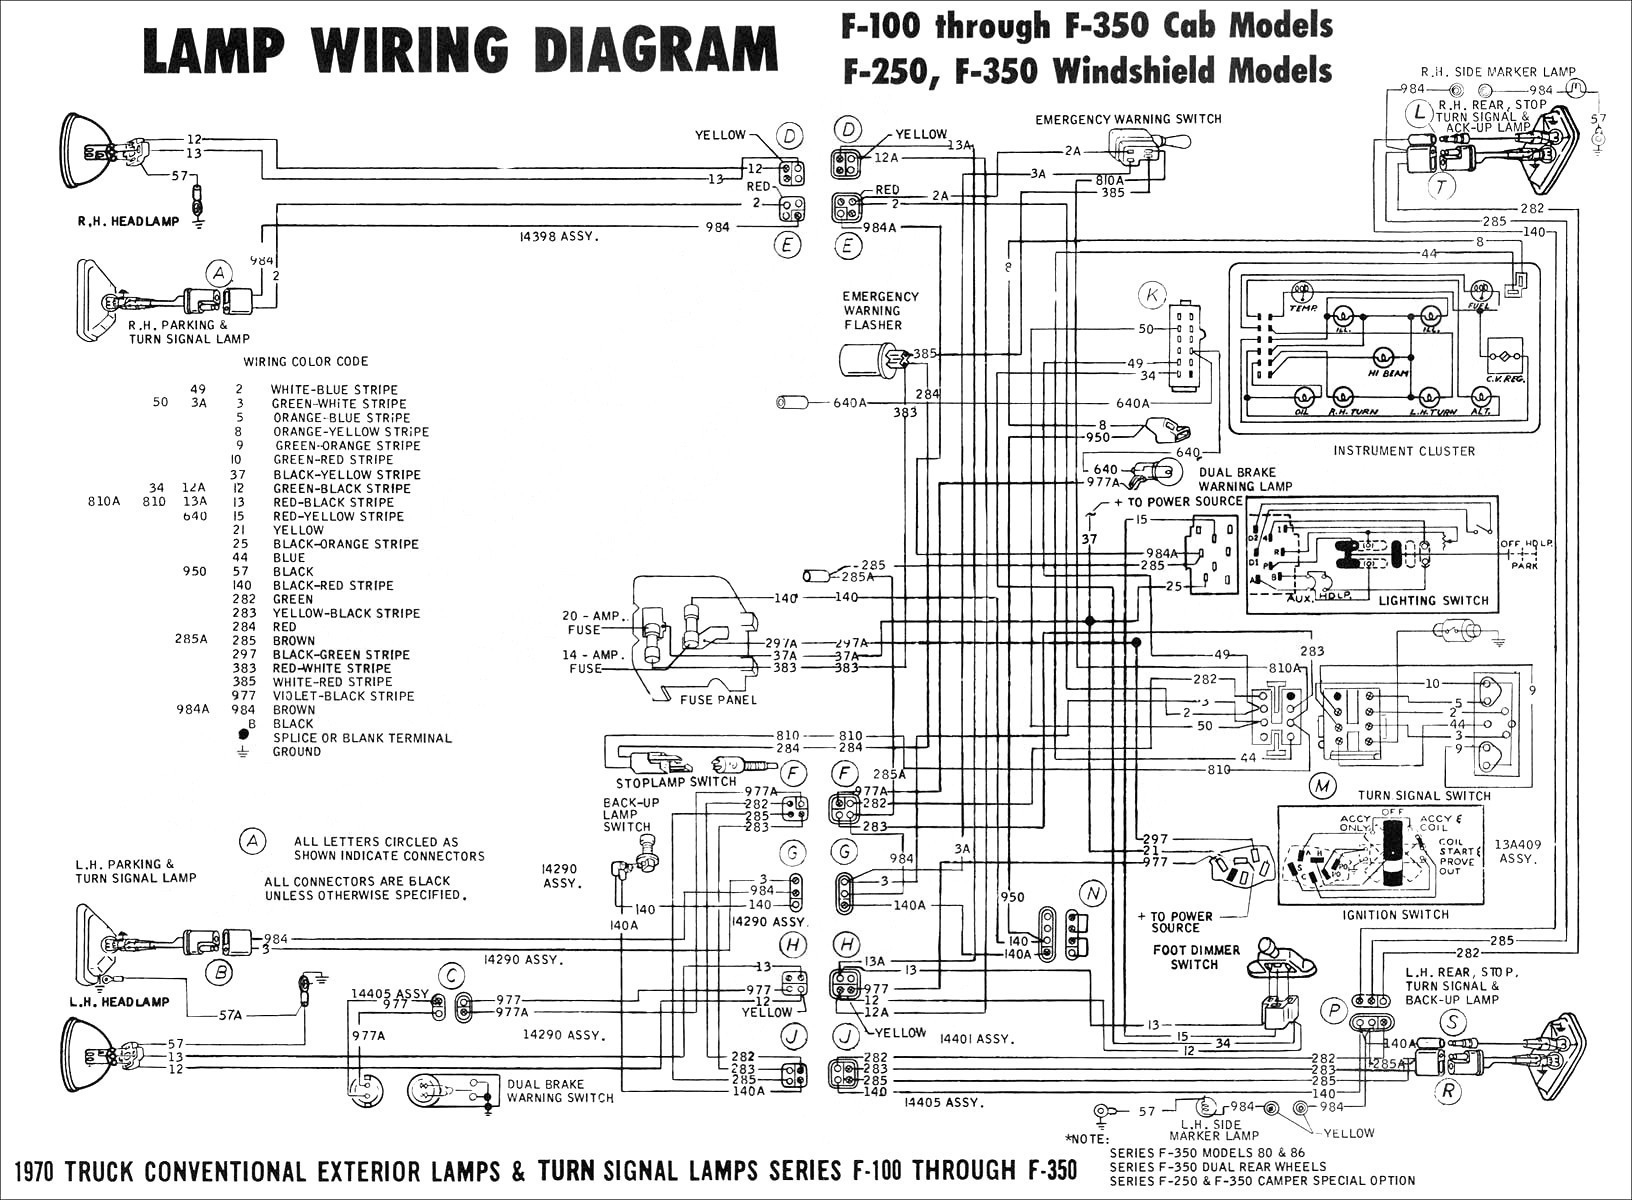 Trailer Wiring Diagram Toyota Tacoma - Trusted Wiring Diagram - Toyota Tacoma Trailer Wiring Diagram